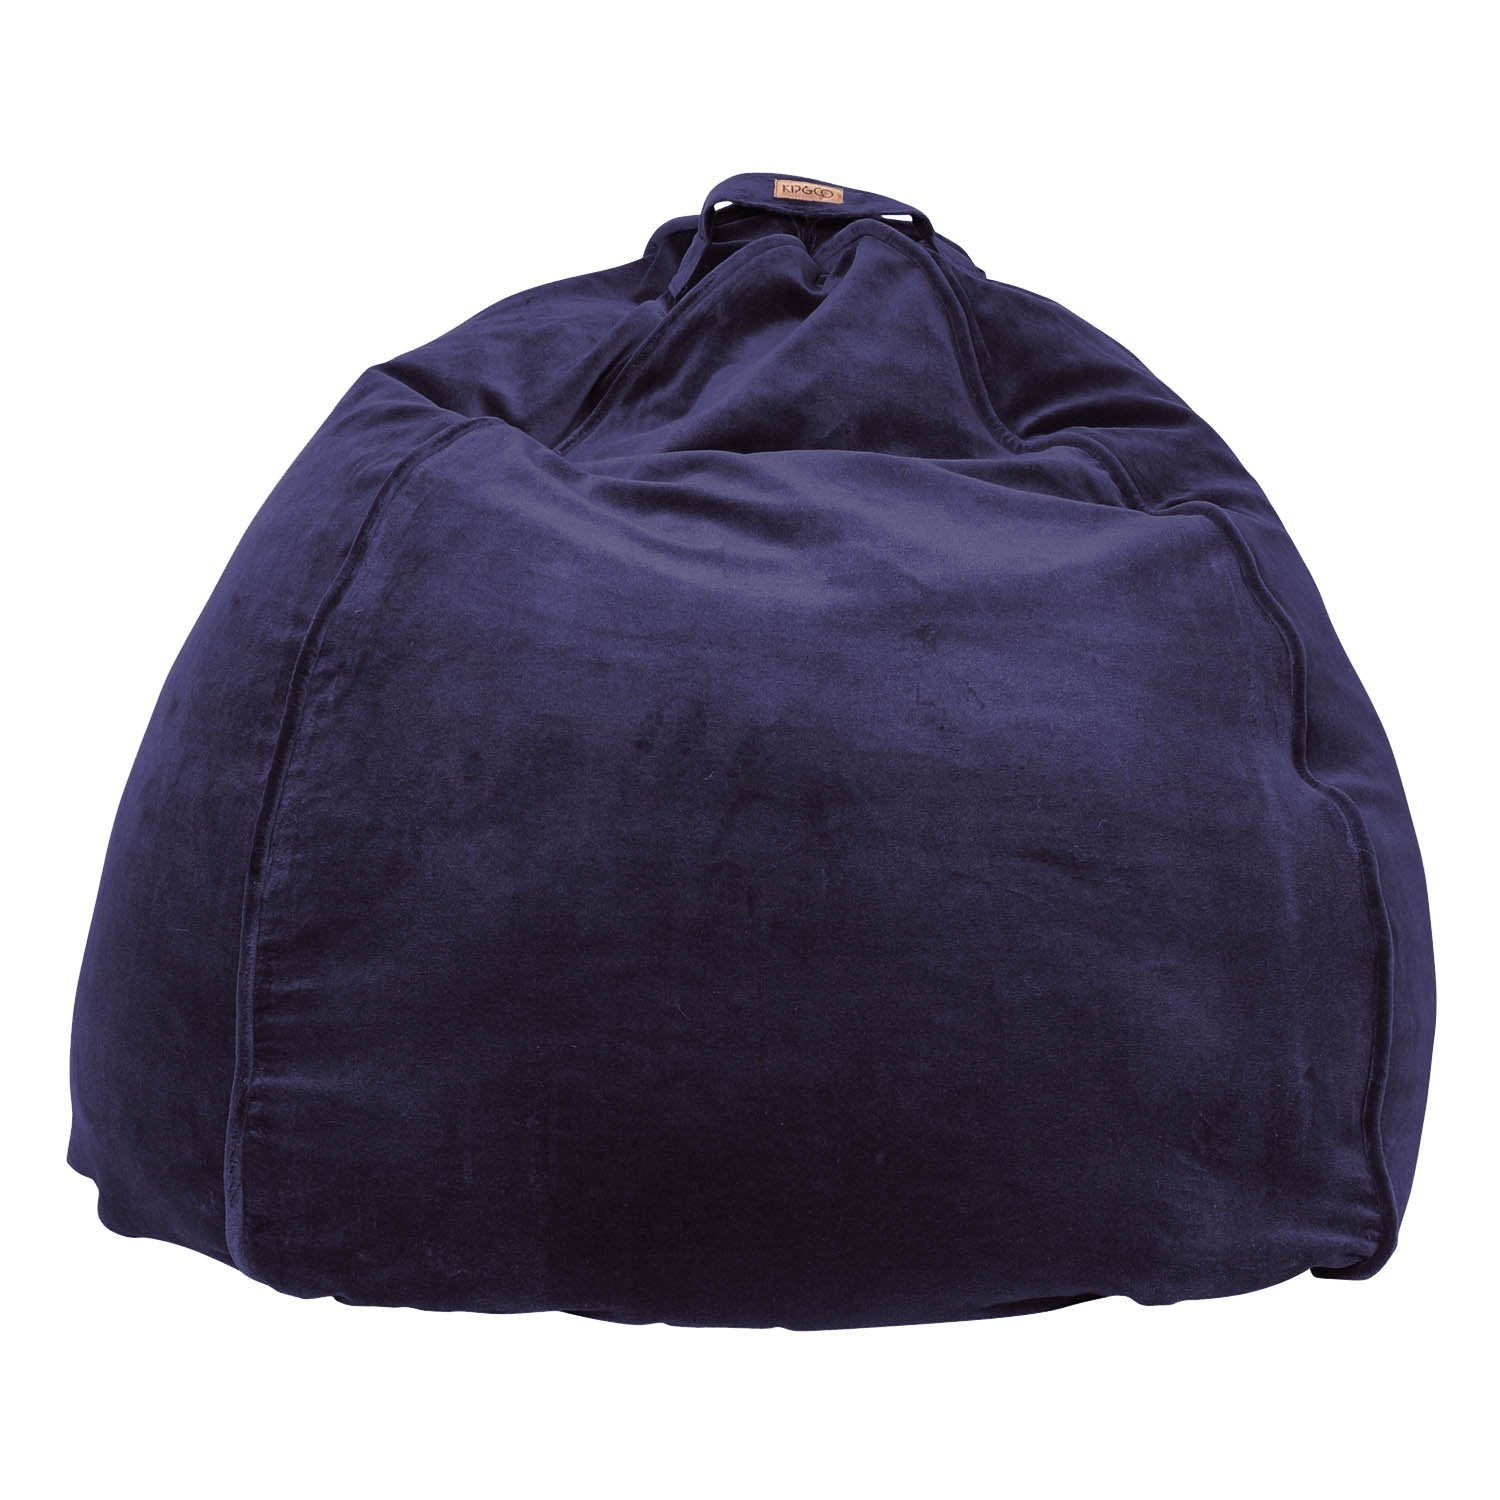 Kip & Co Navy Velvet Beanbag - The Artisan Storeroom